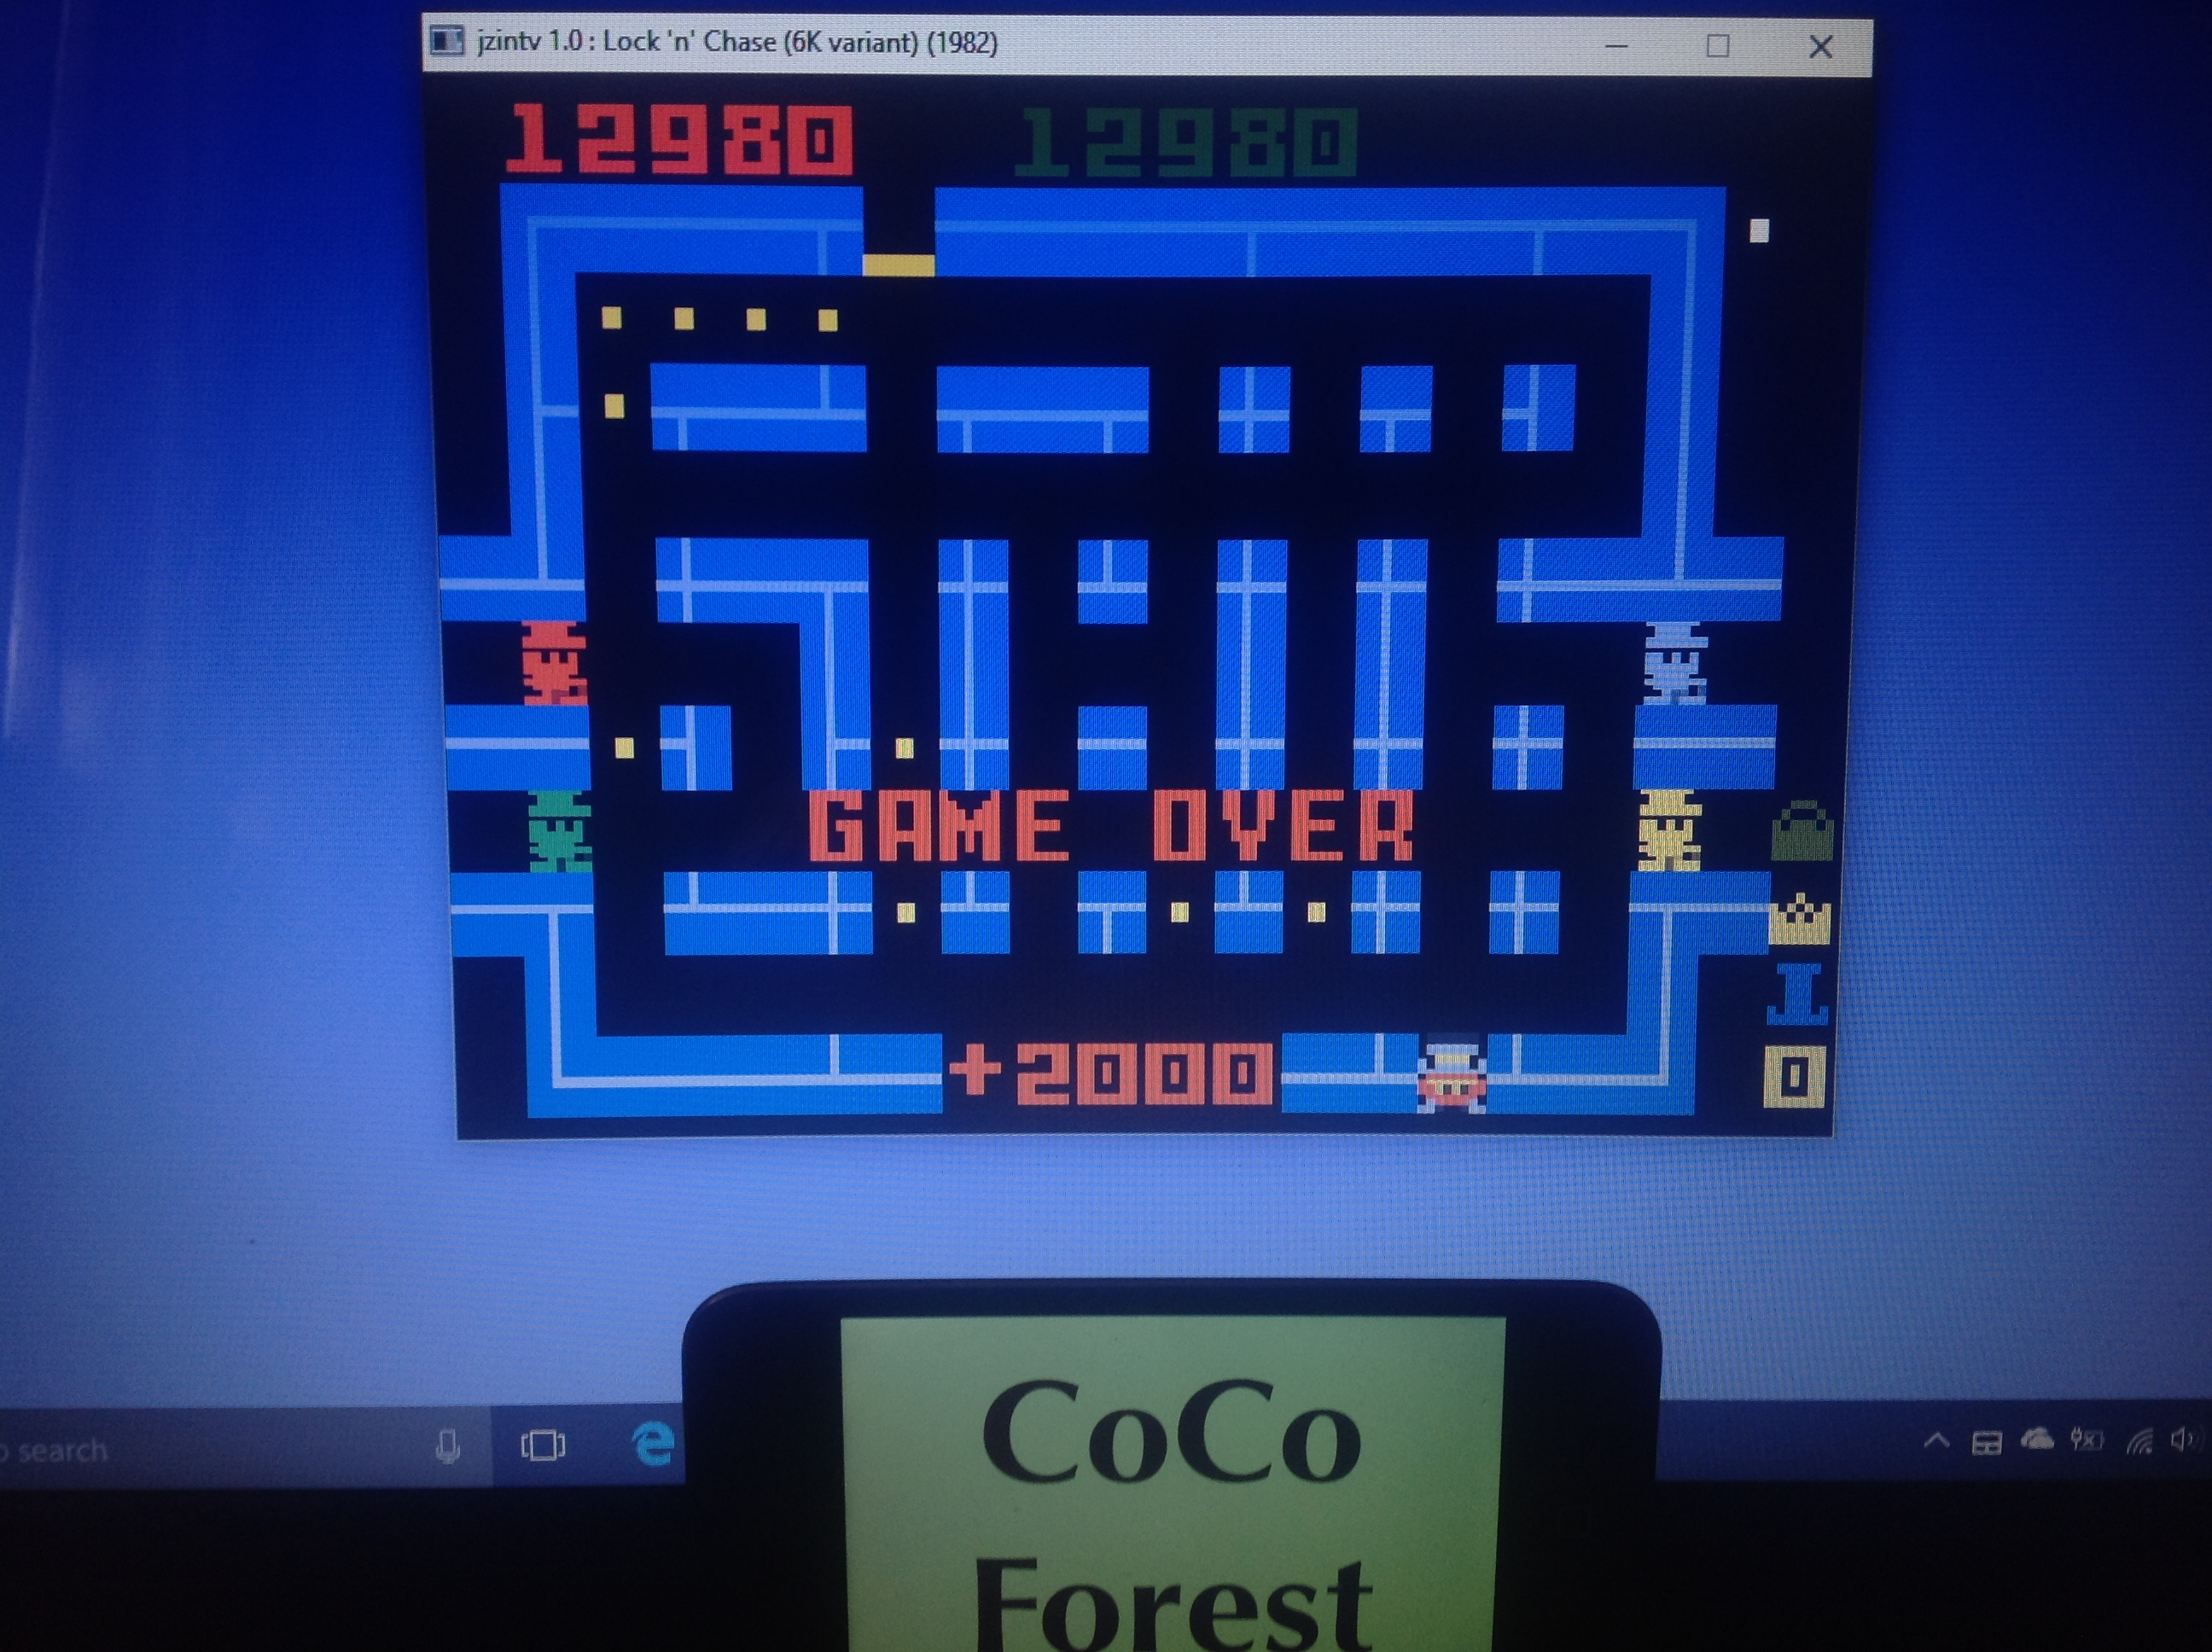 CoCoForest: Lock N Chase: Skill Disc (Intellivision Emulated) 12,980 points on 2018-01-26 07:36:10